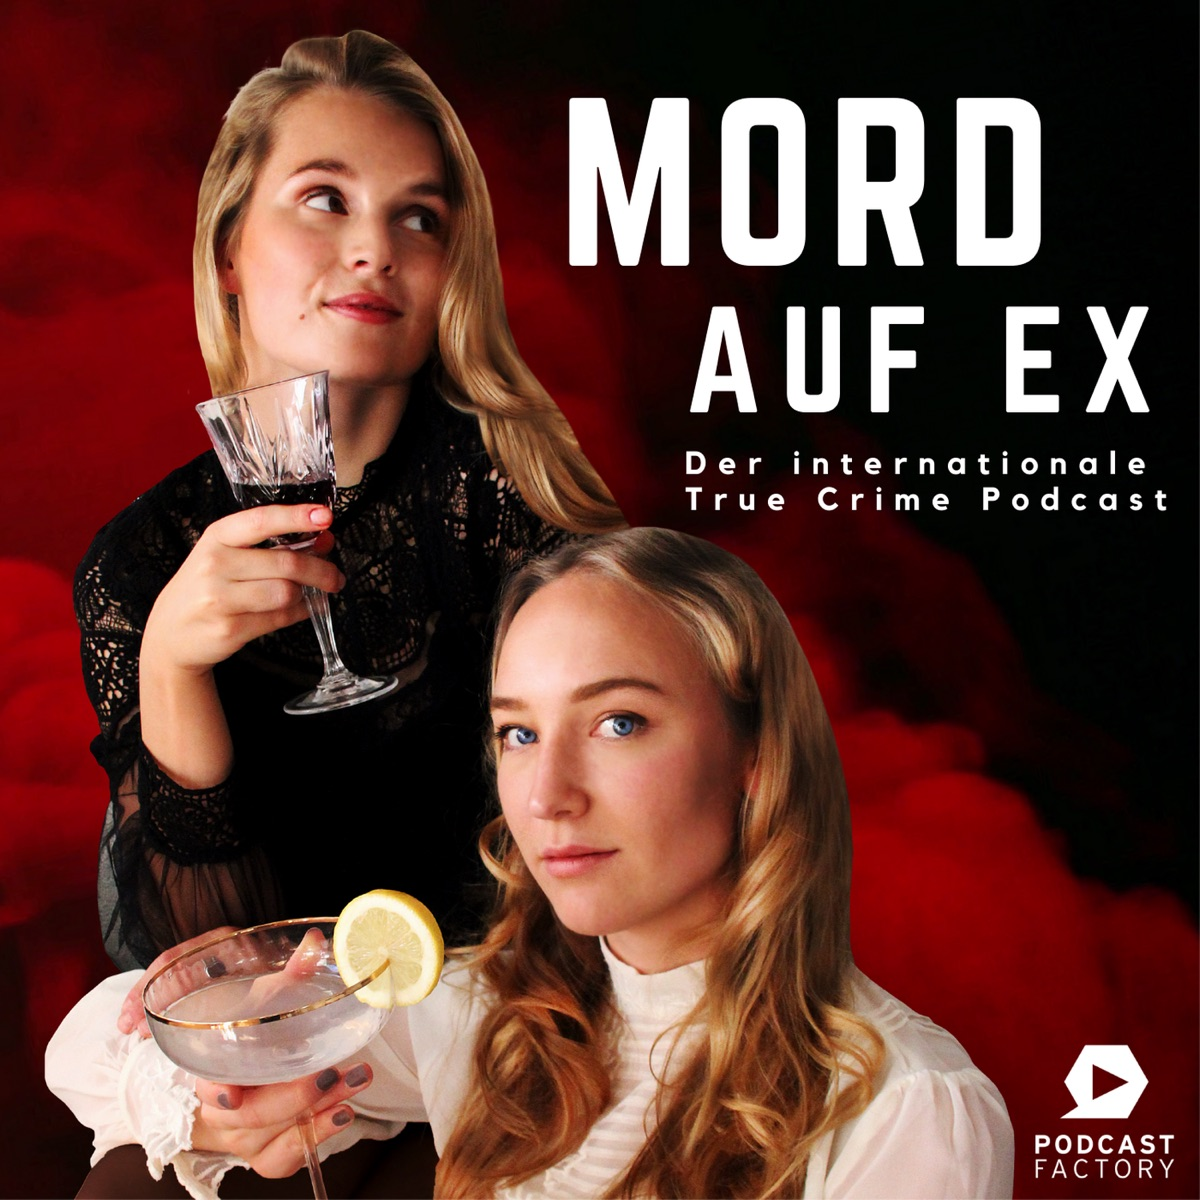 MORD AUF EX – Der internationale True Crime Podcast